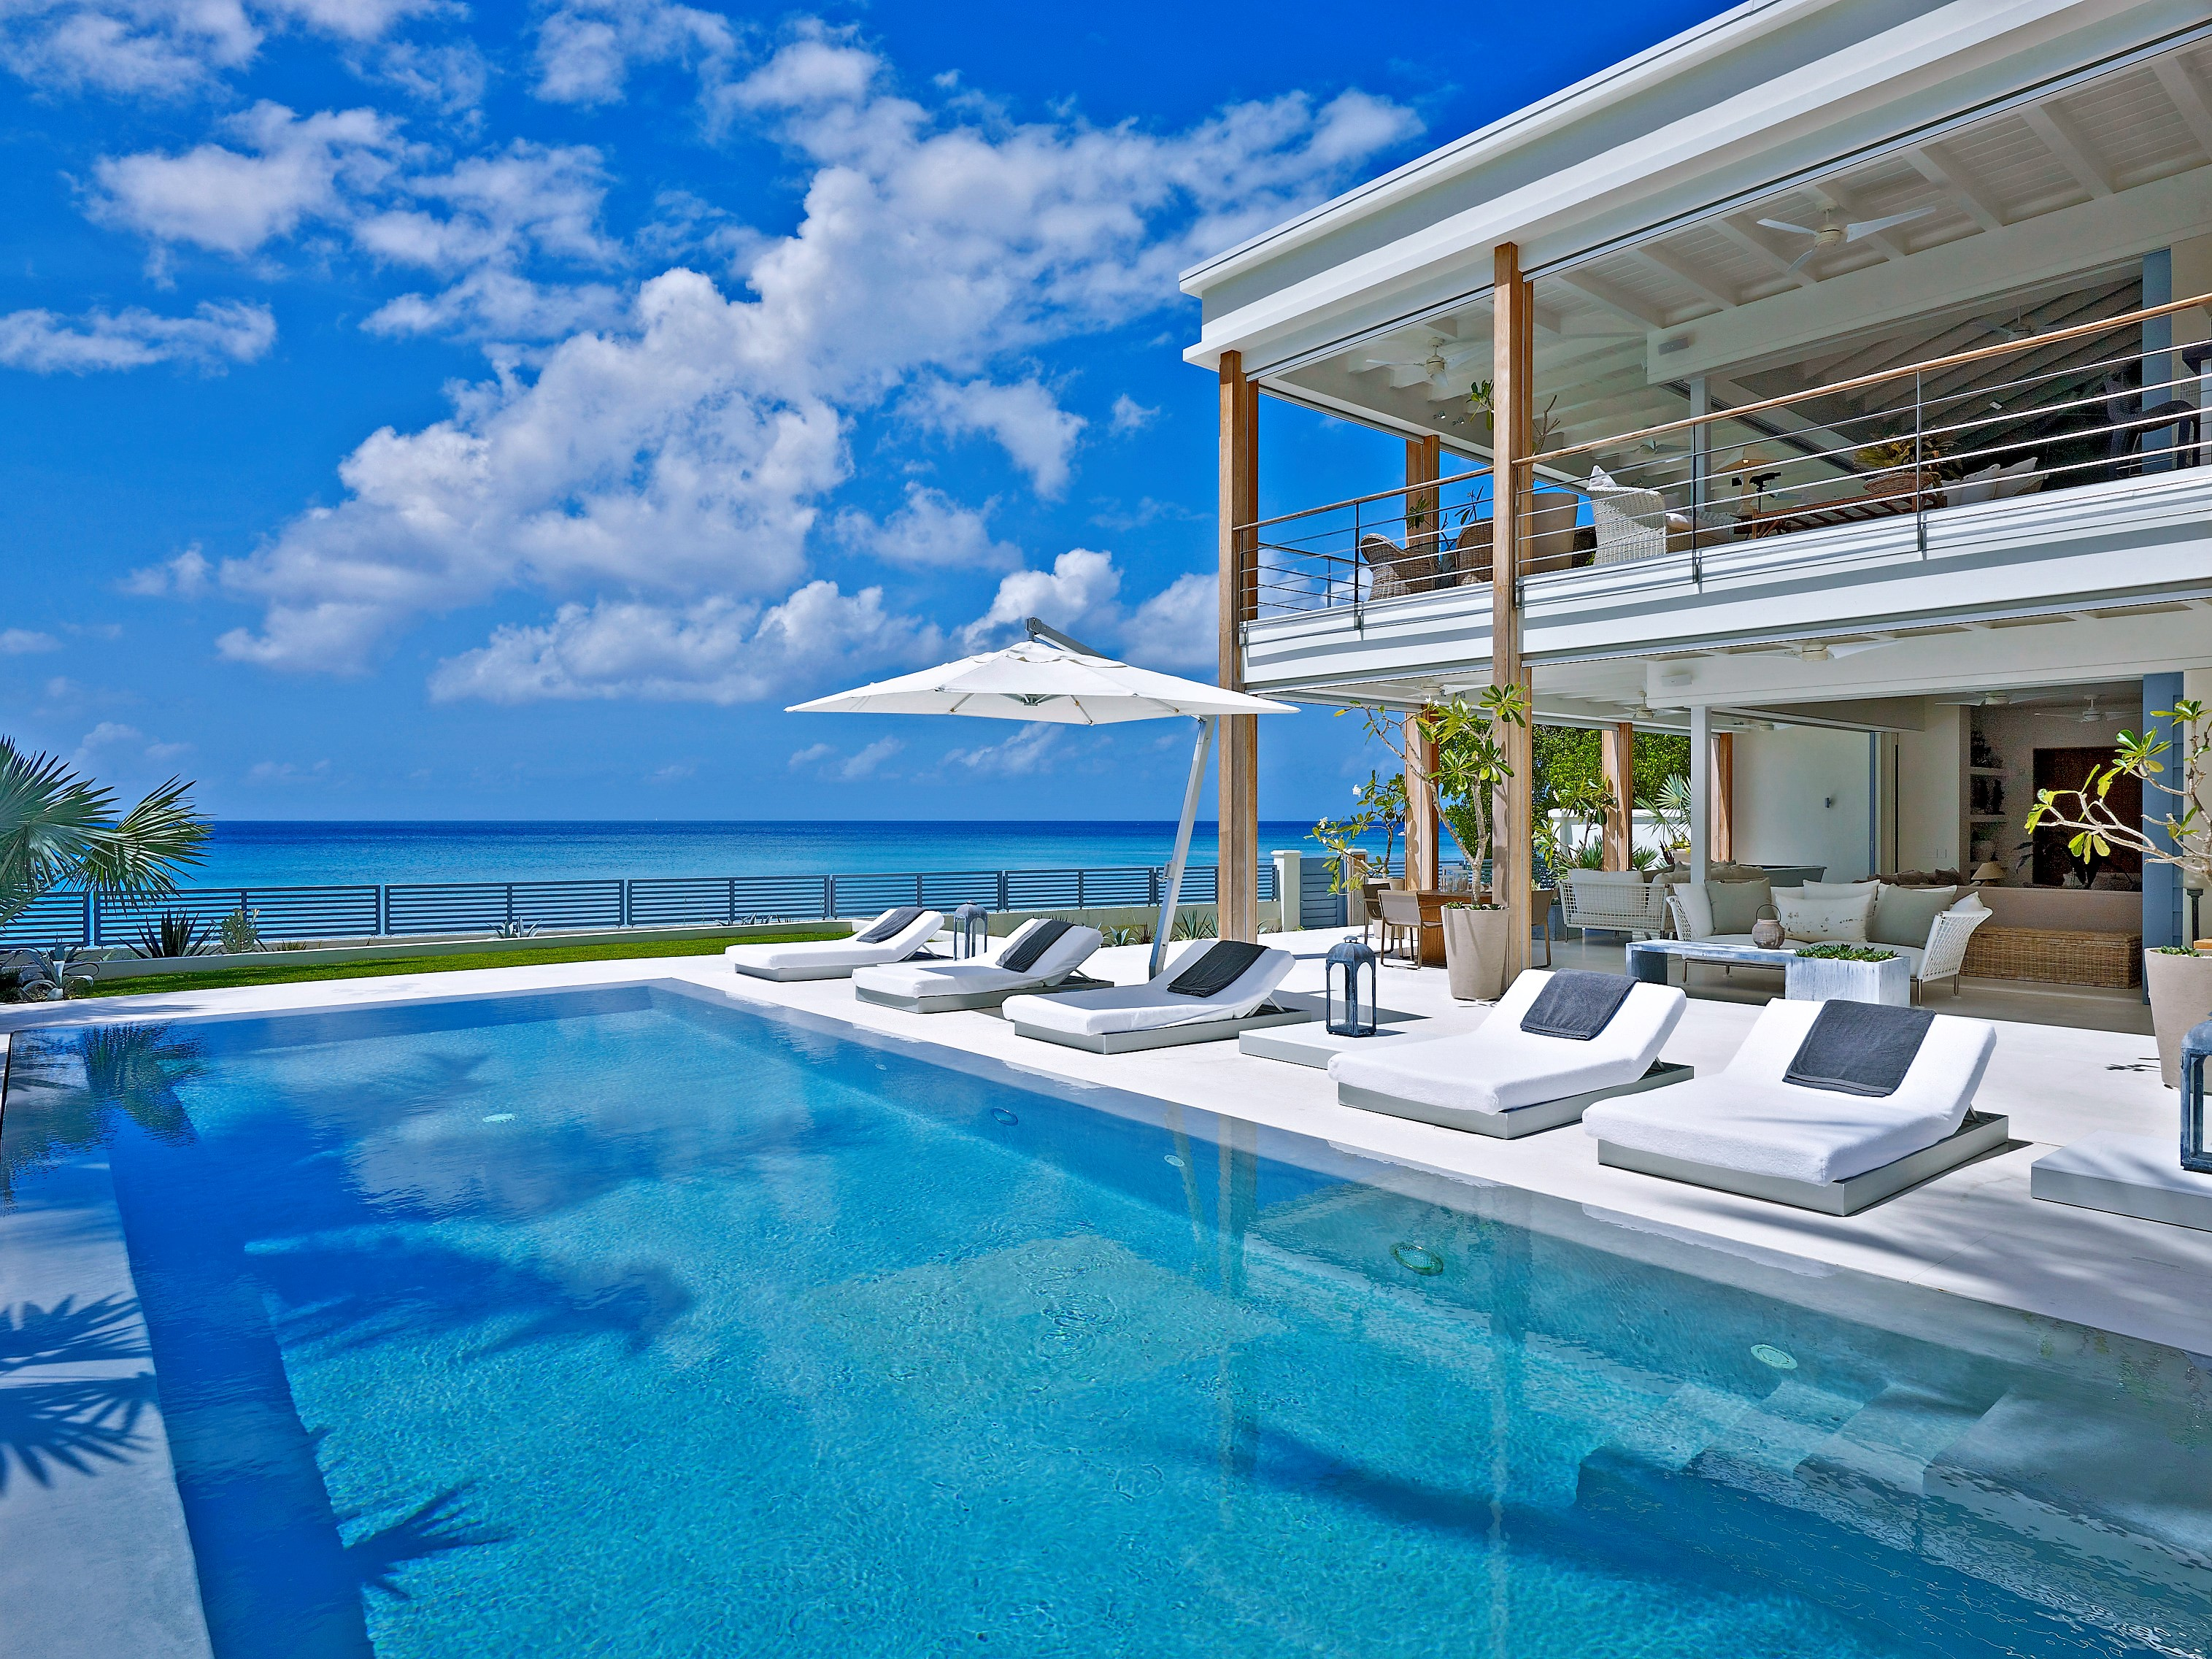 Pool area and sundeck at barbados luxury villa the dream